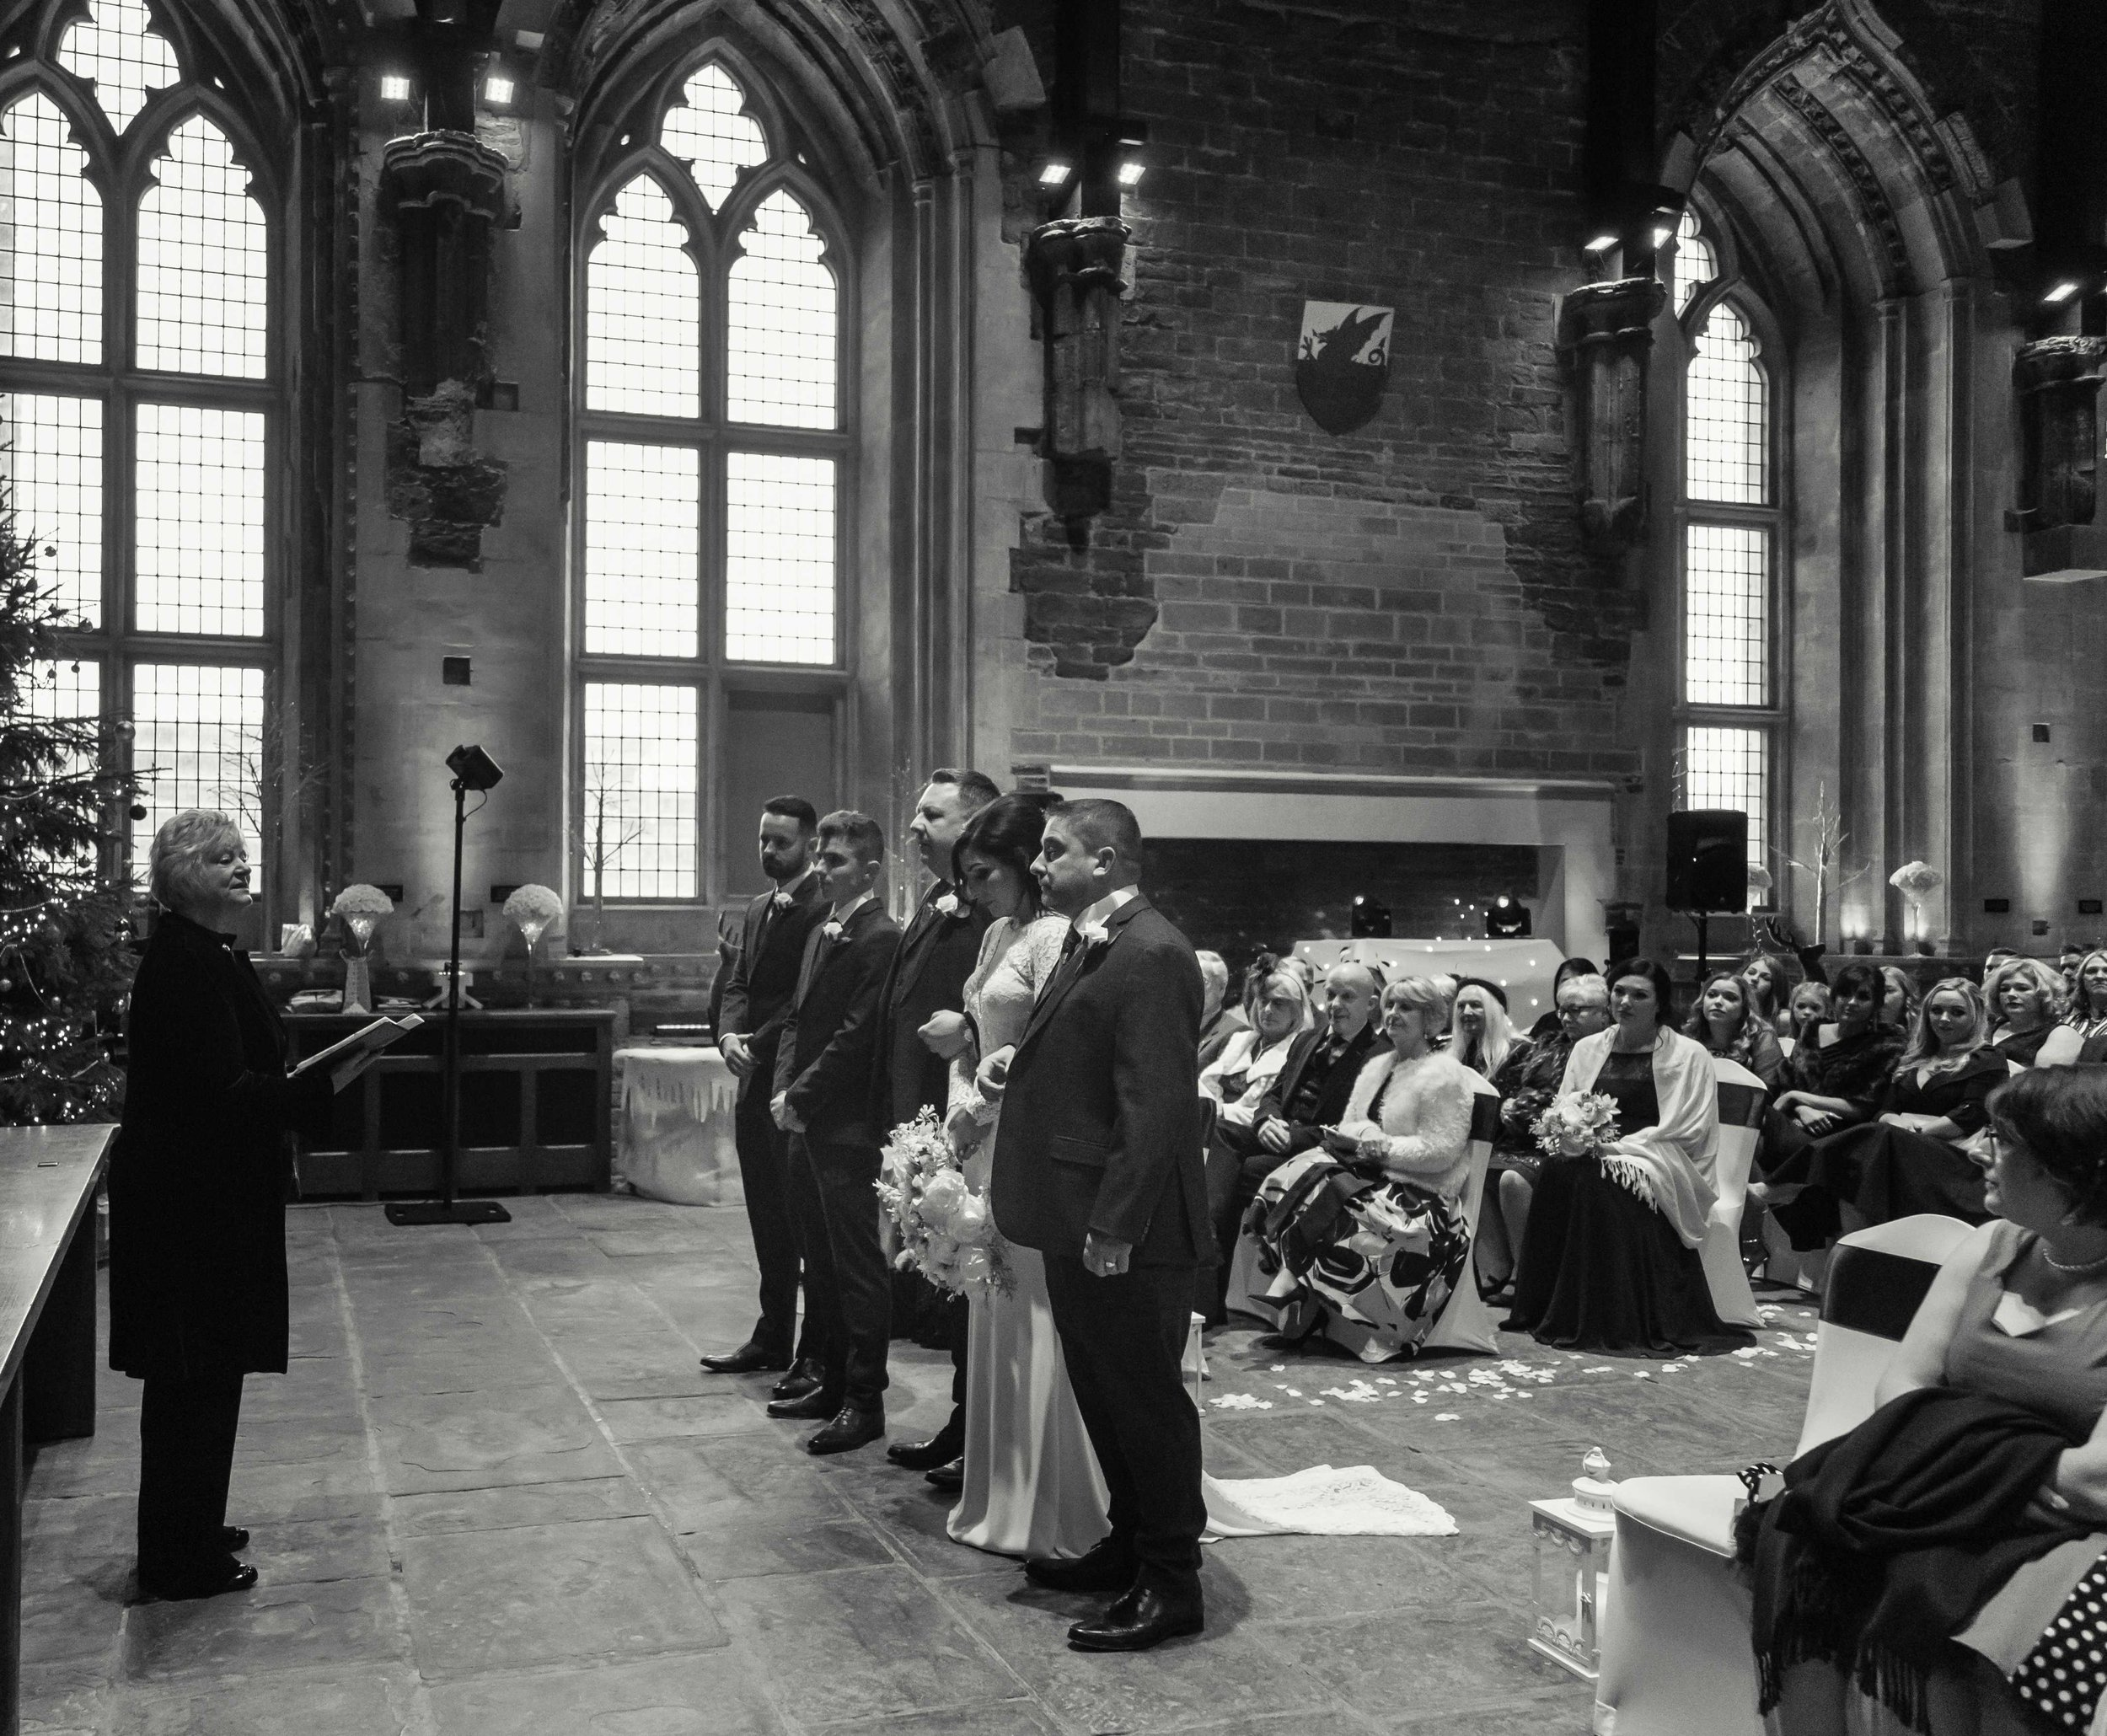 Black and white photograph of wedding ceremony at the Great Hall, Caerphilly Castle